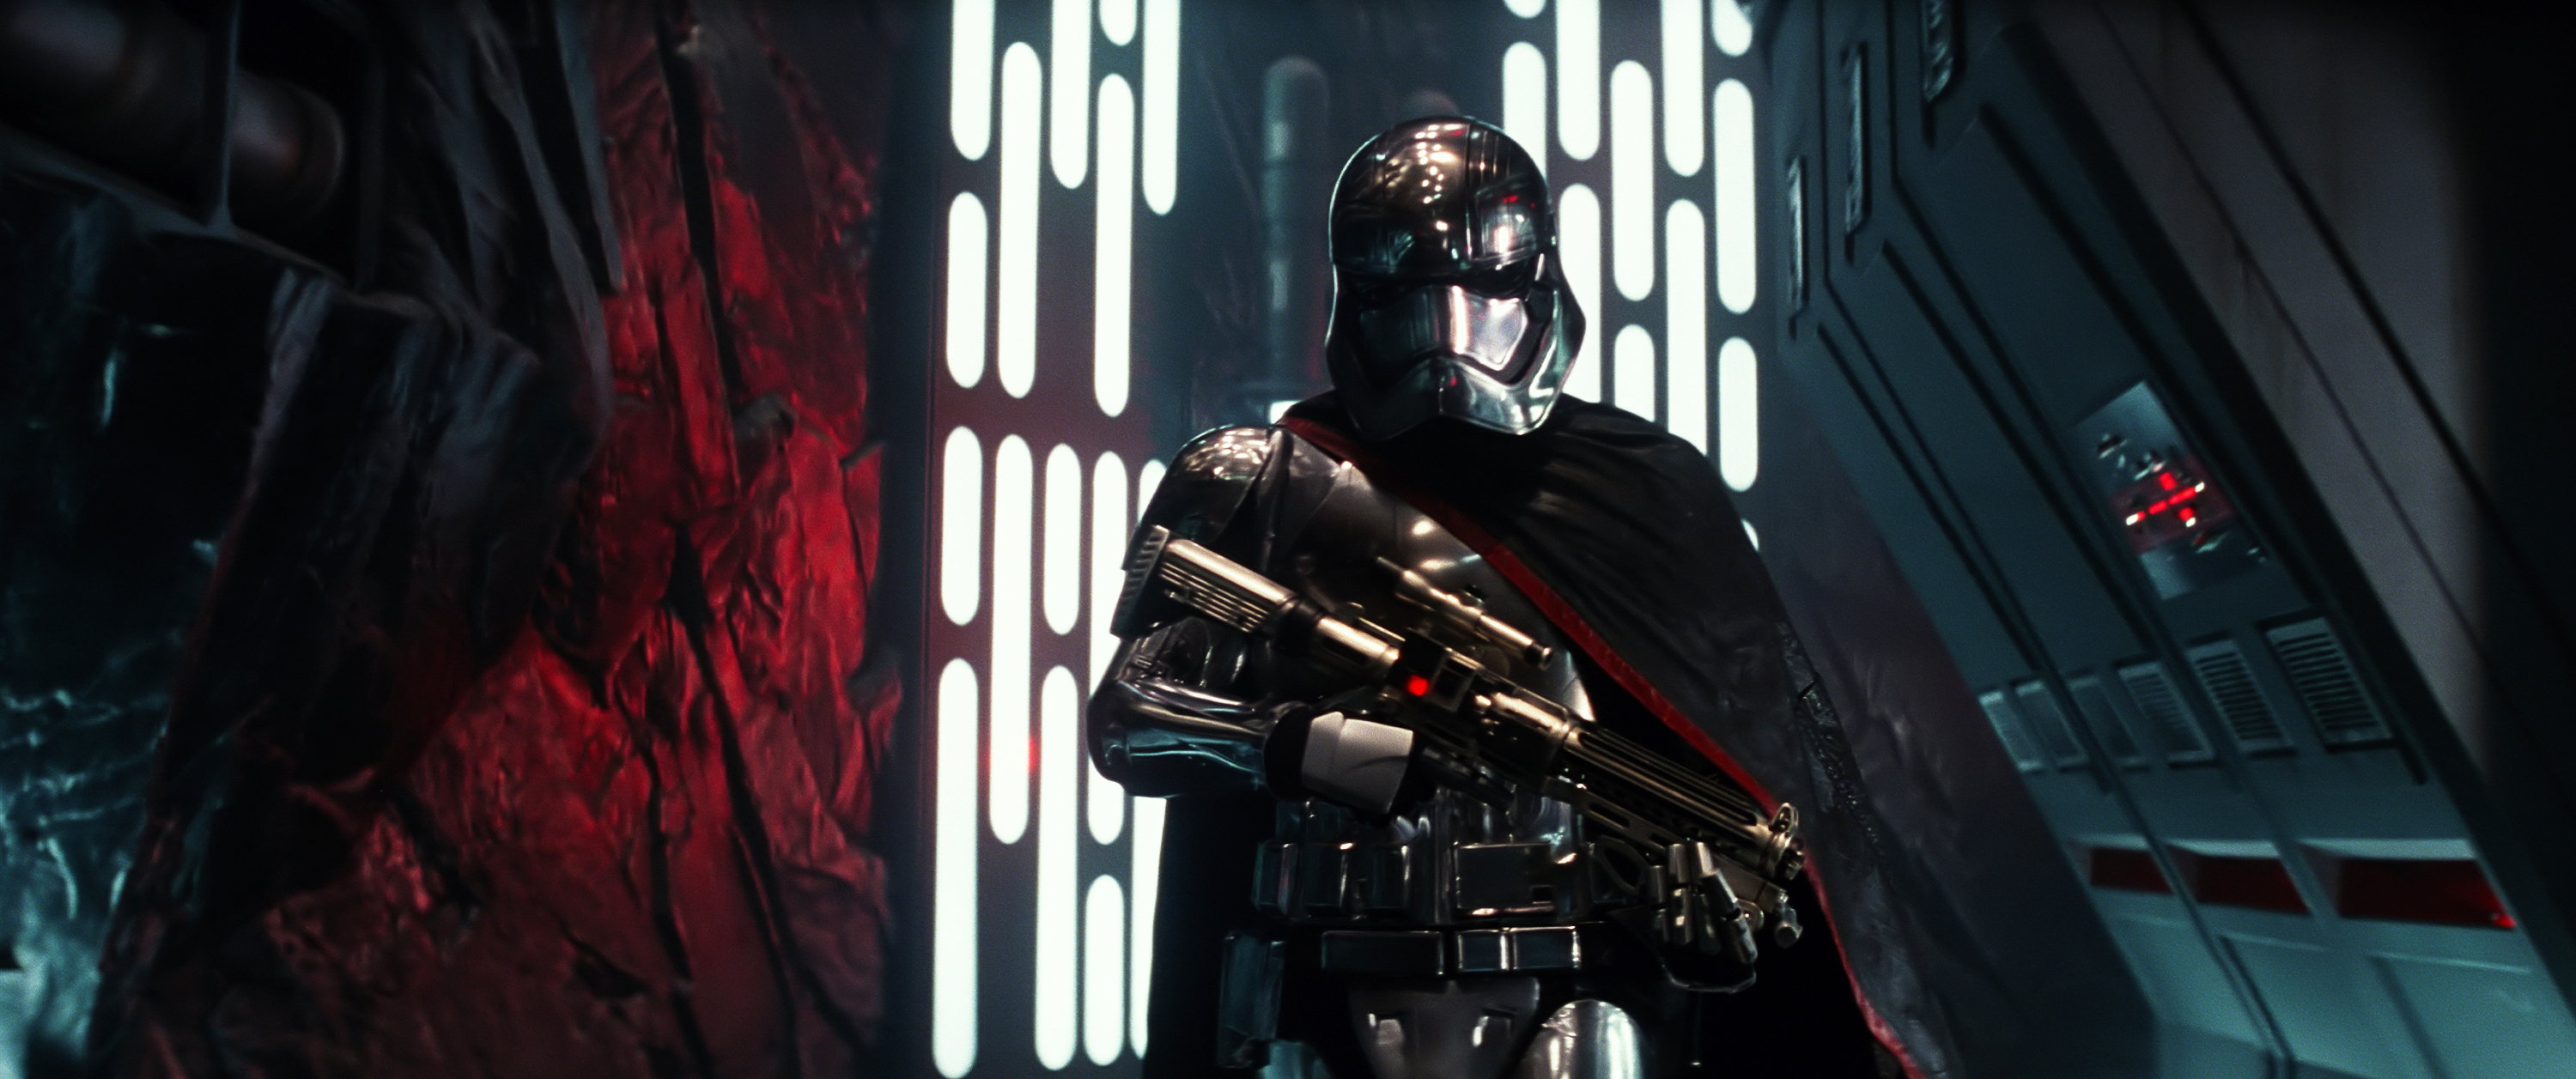 Is THIS the first line spoken in Star Wars: The Force Awakens?